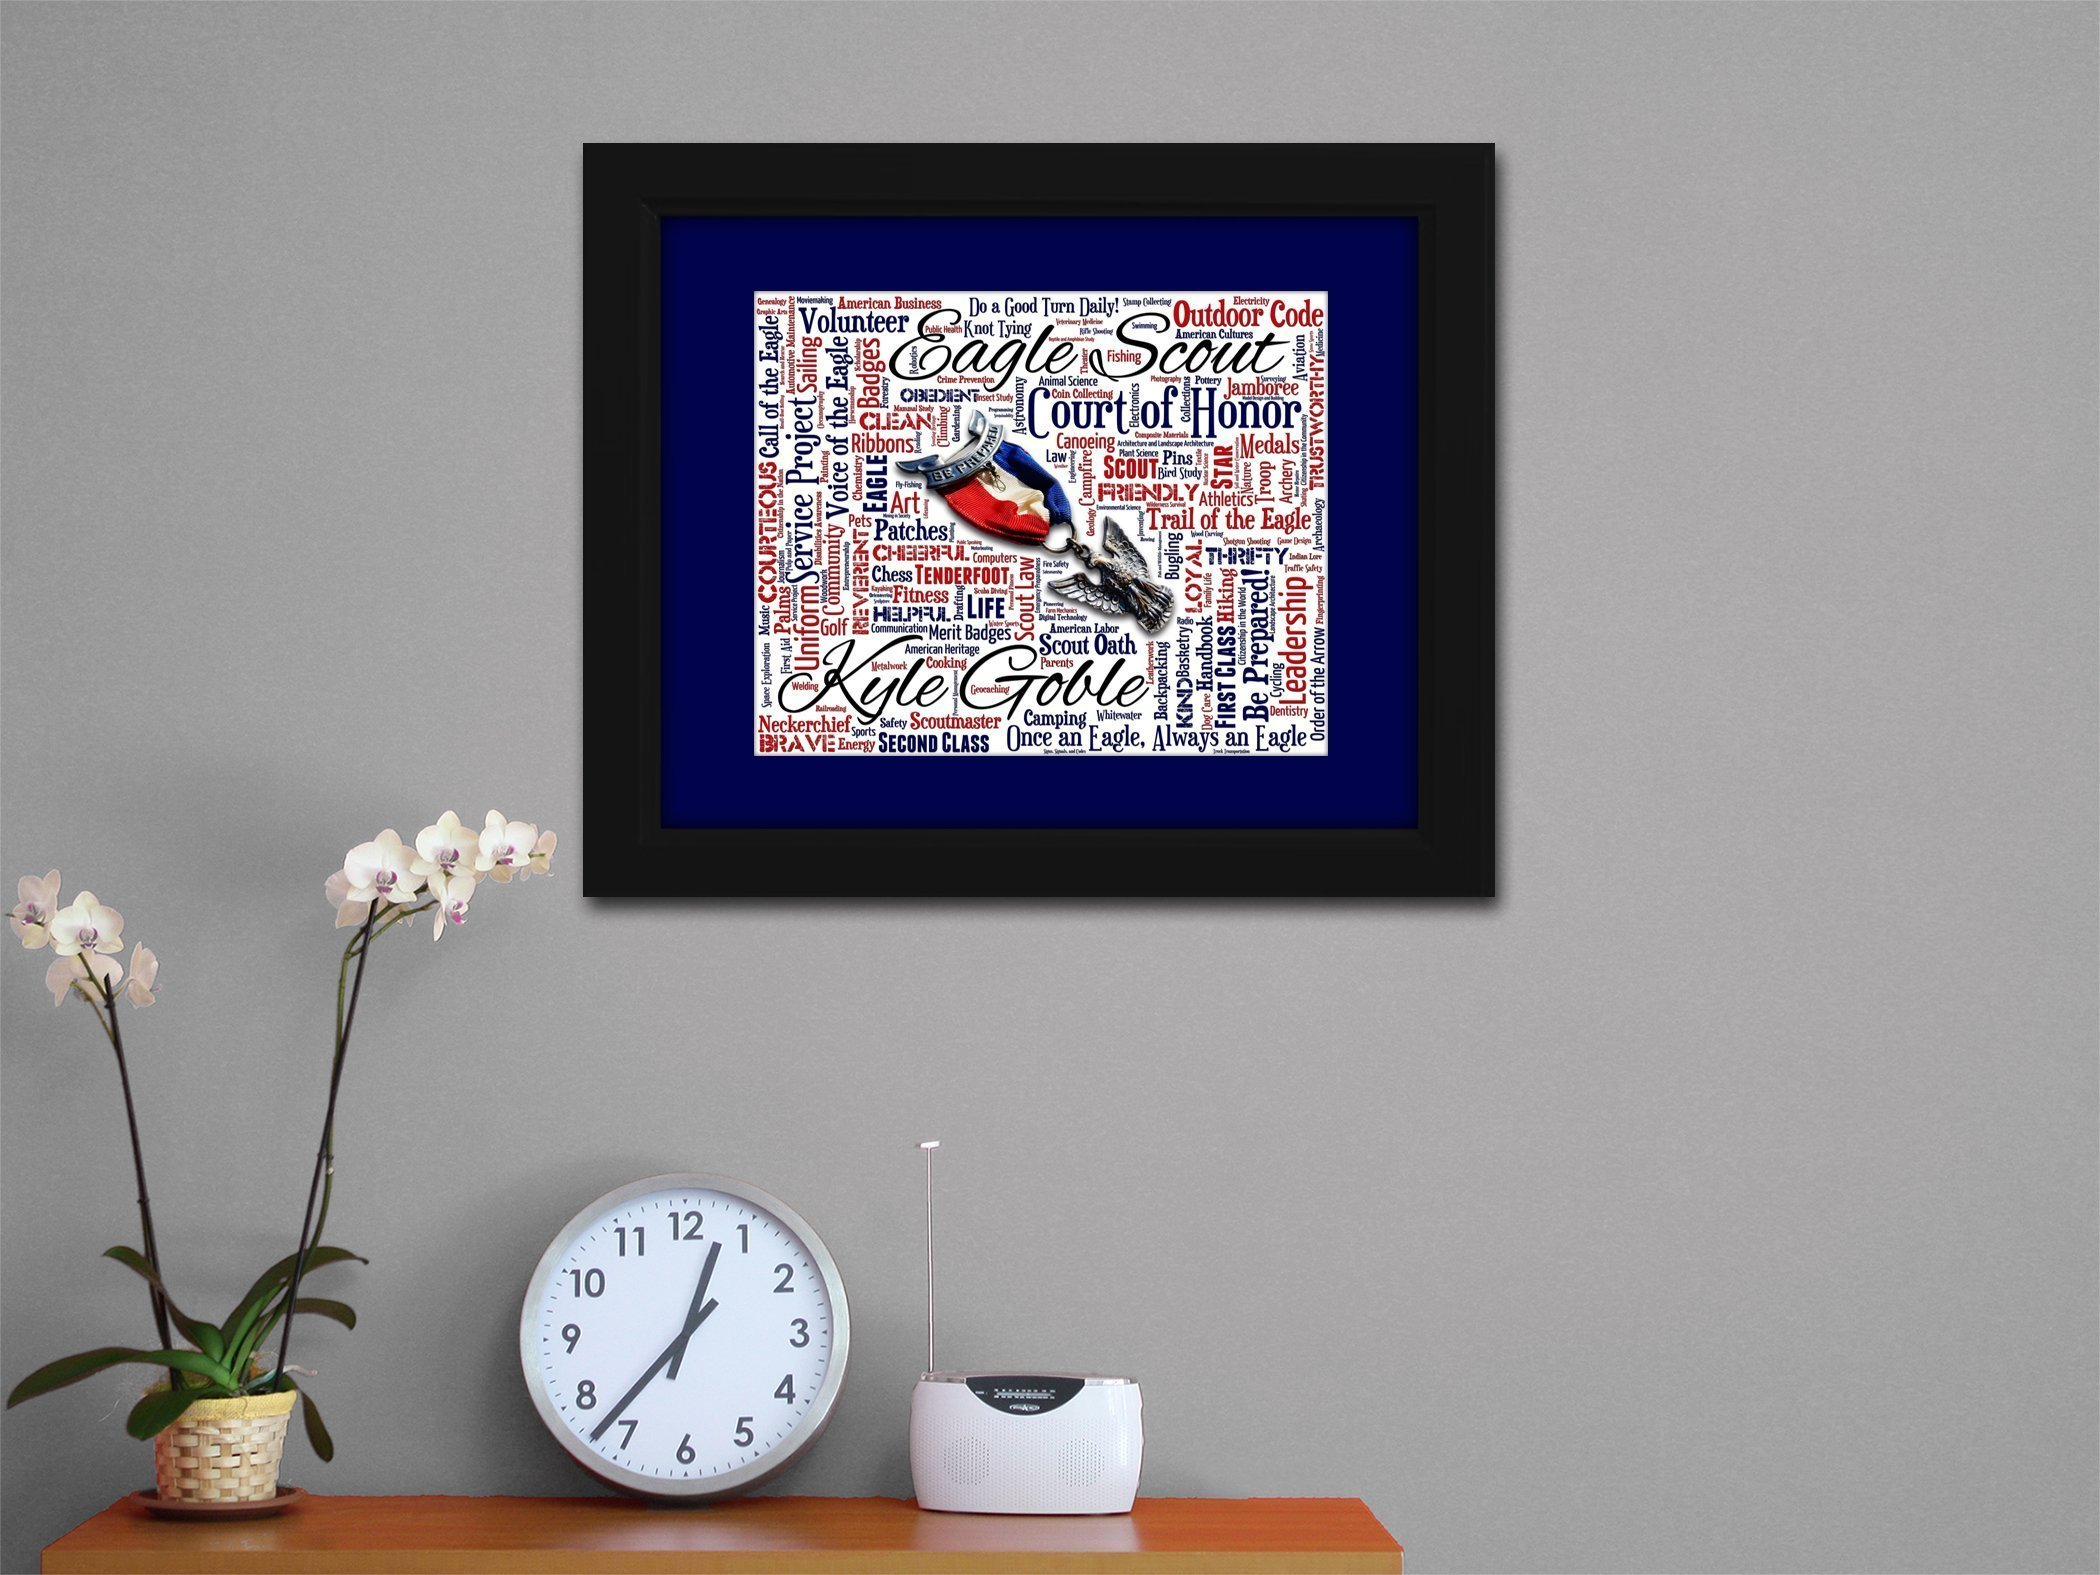 Eagle Scout 16x20 Art Piece - Beautifully matted and framed behind glass by AO Designs Artwork